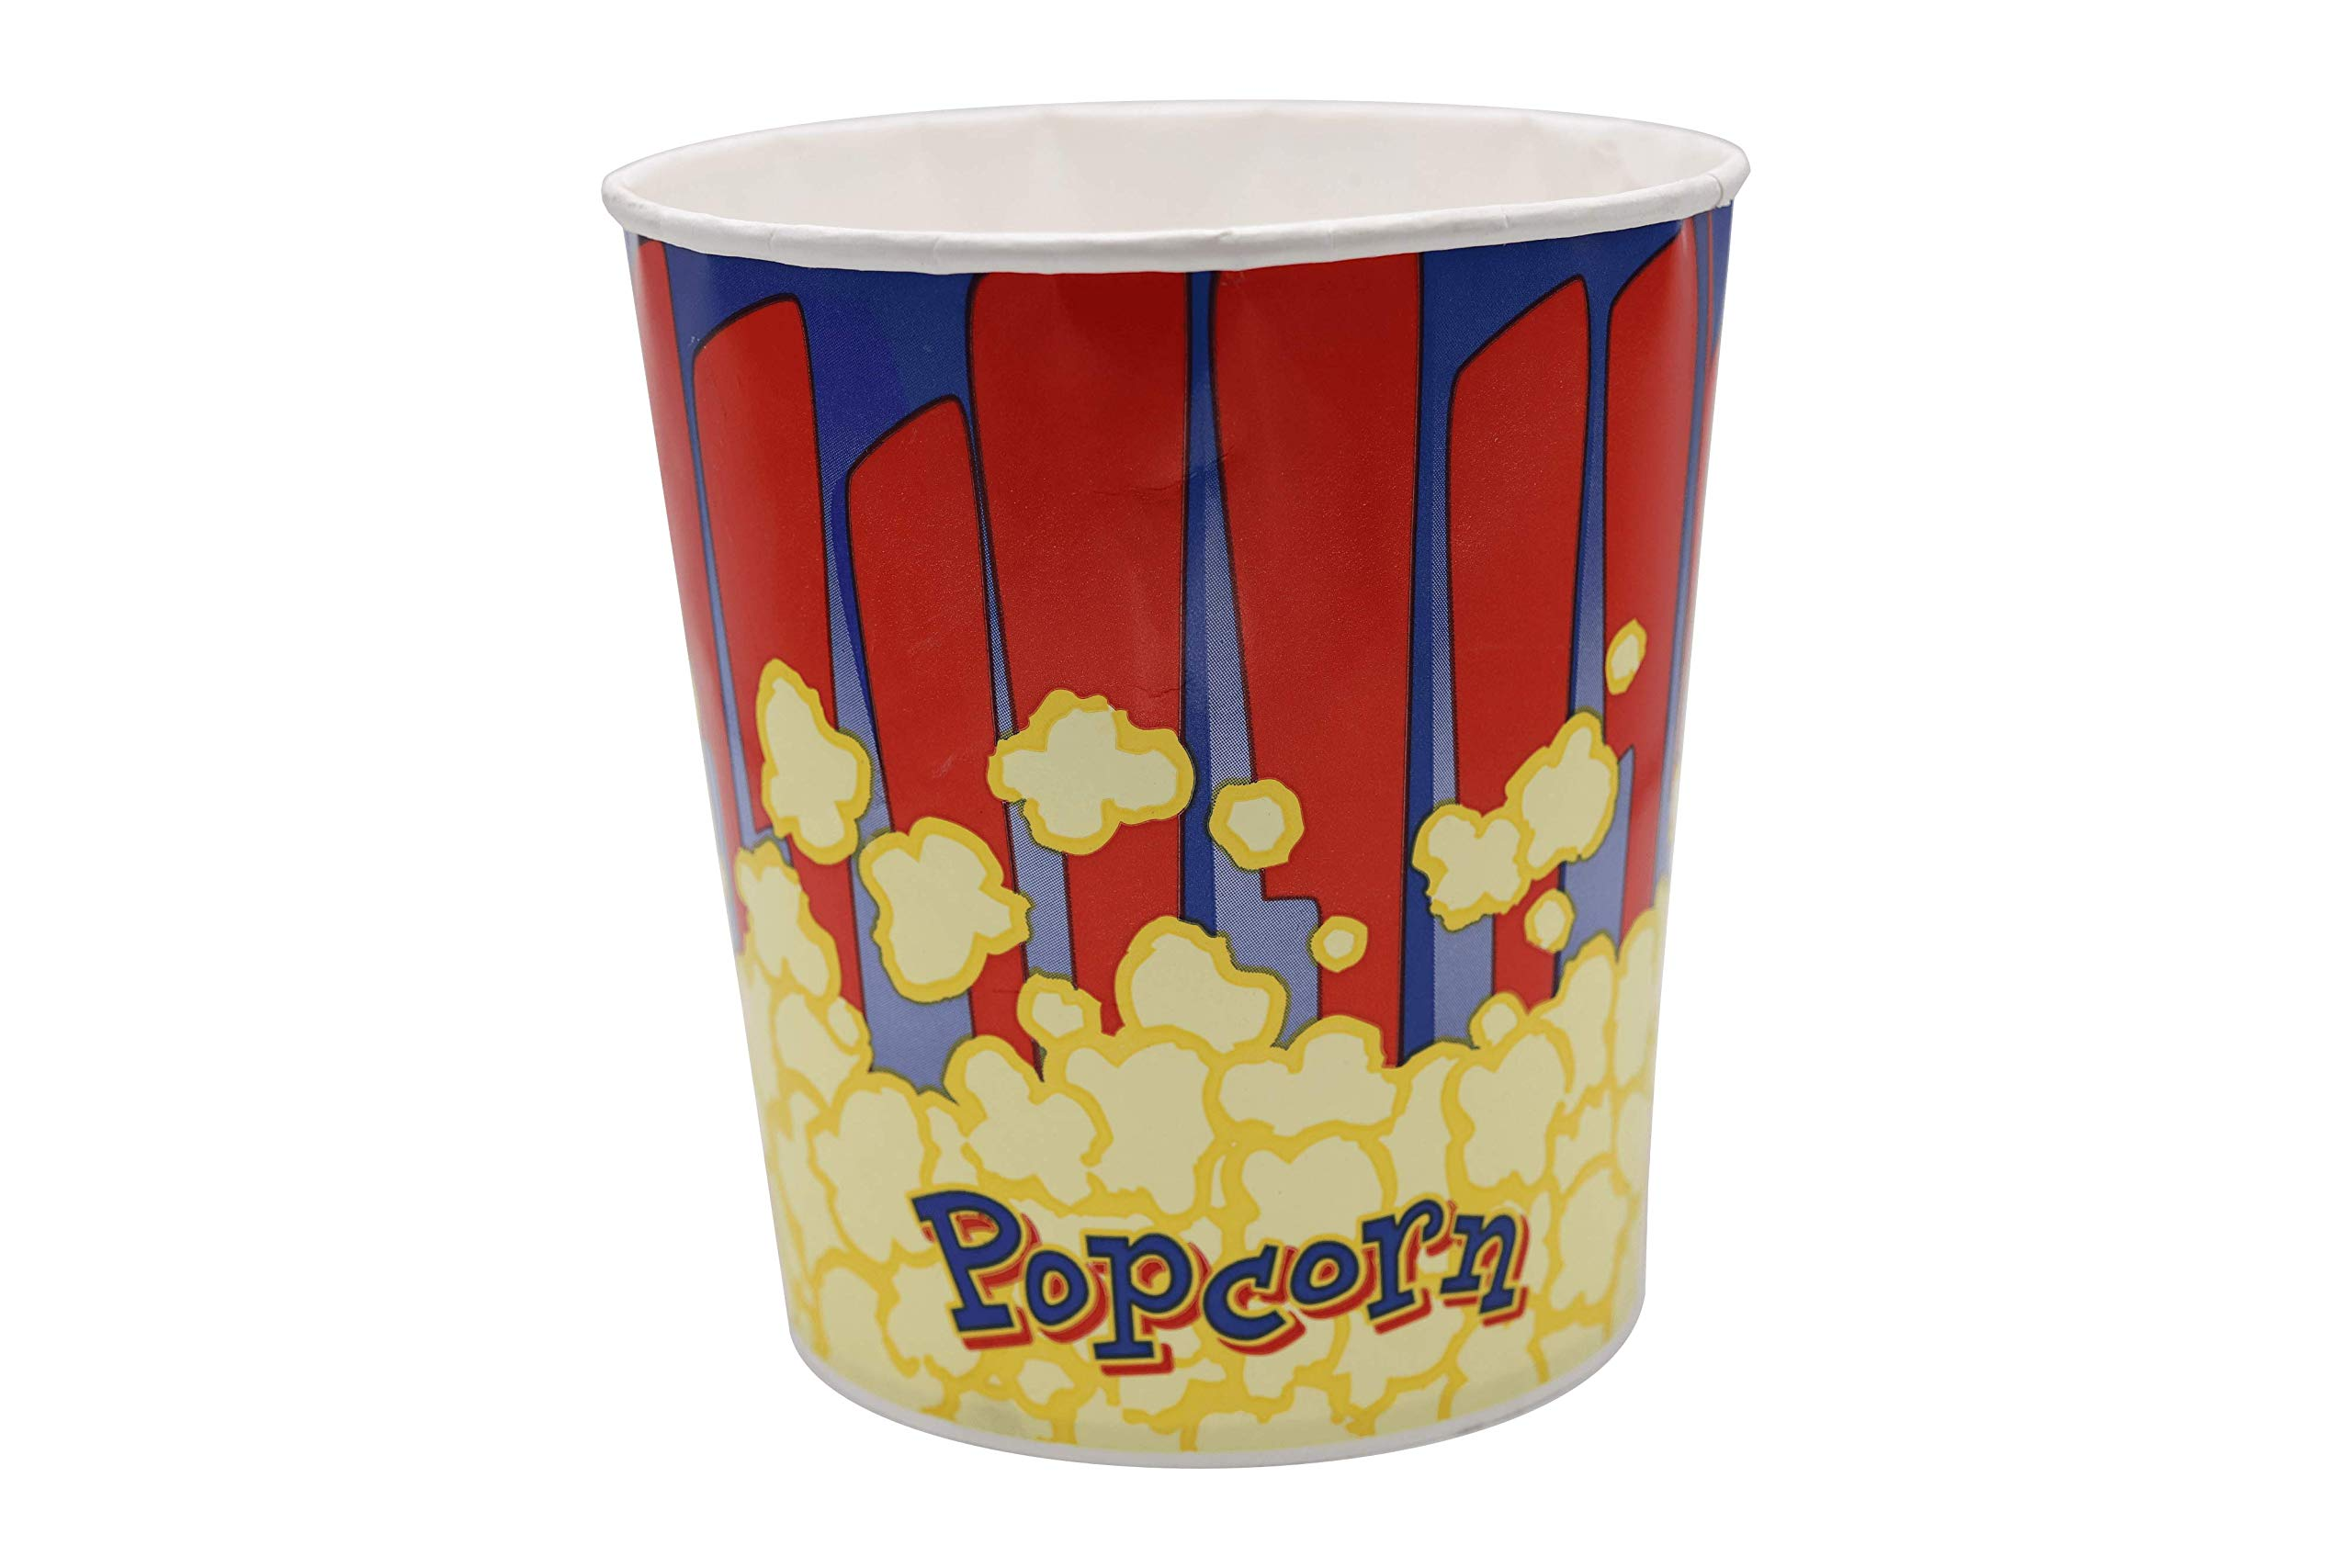 Beach Cities Wholesalers 130 oz Popcorn Tubs - Red & Blue 130 oz (300 count) by California Concessions Corp